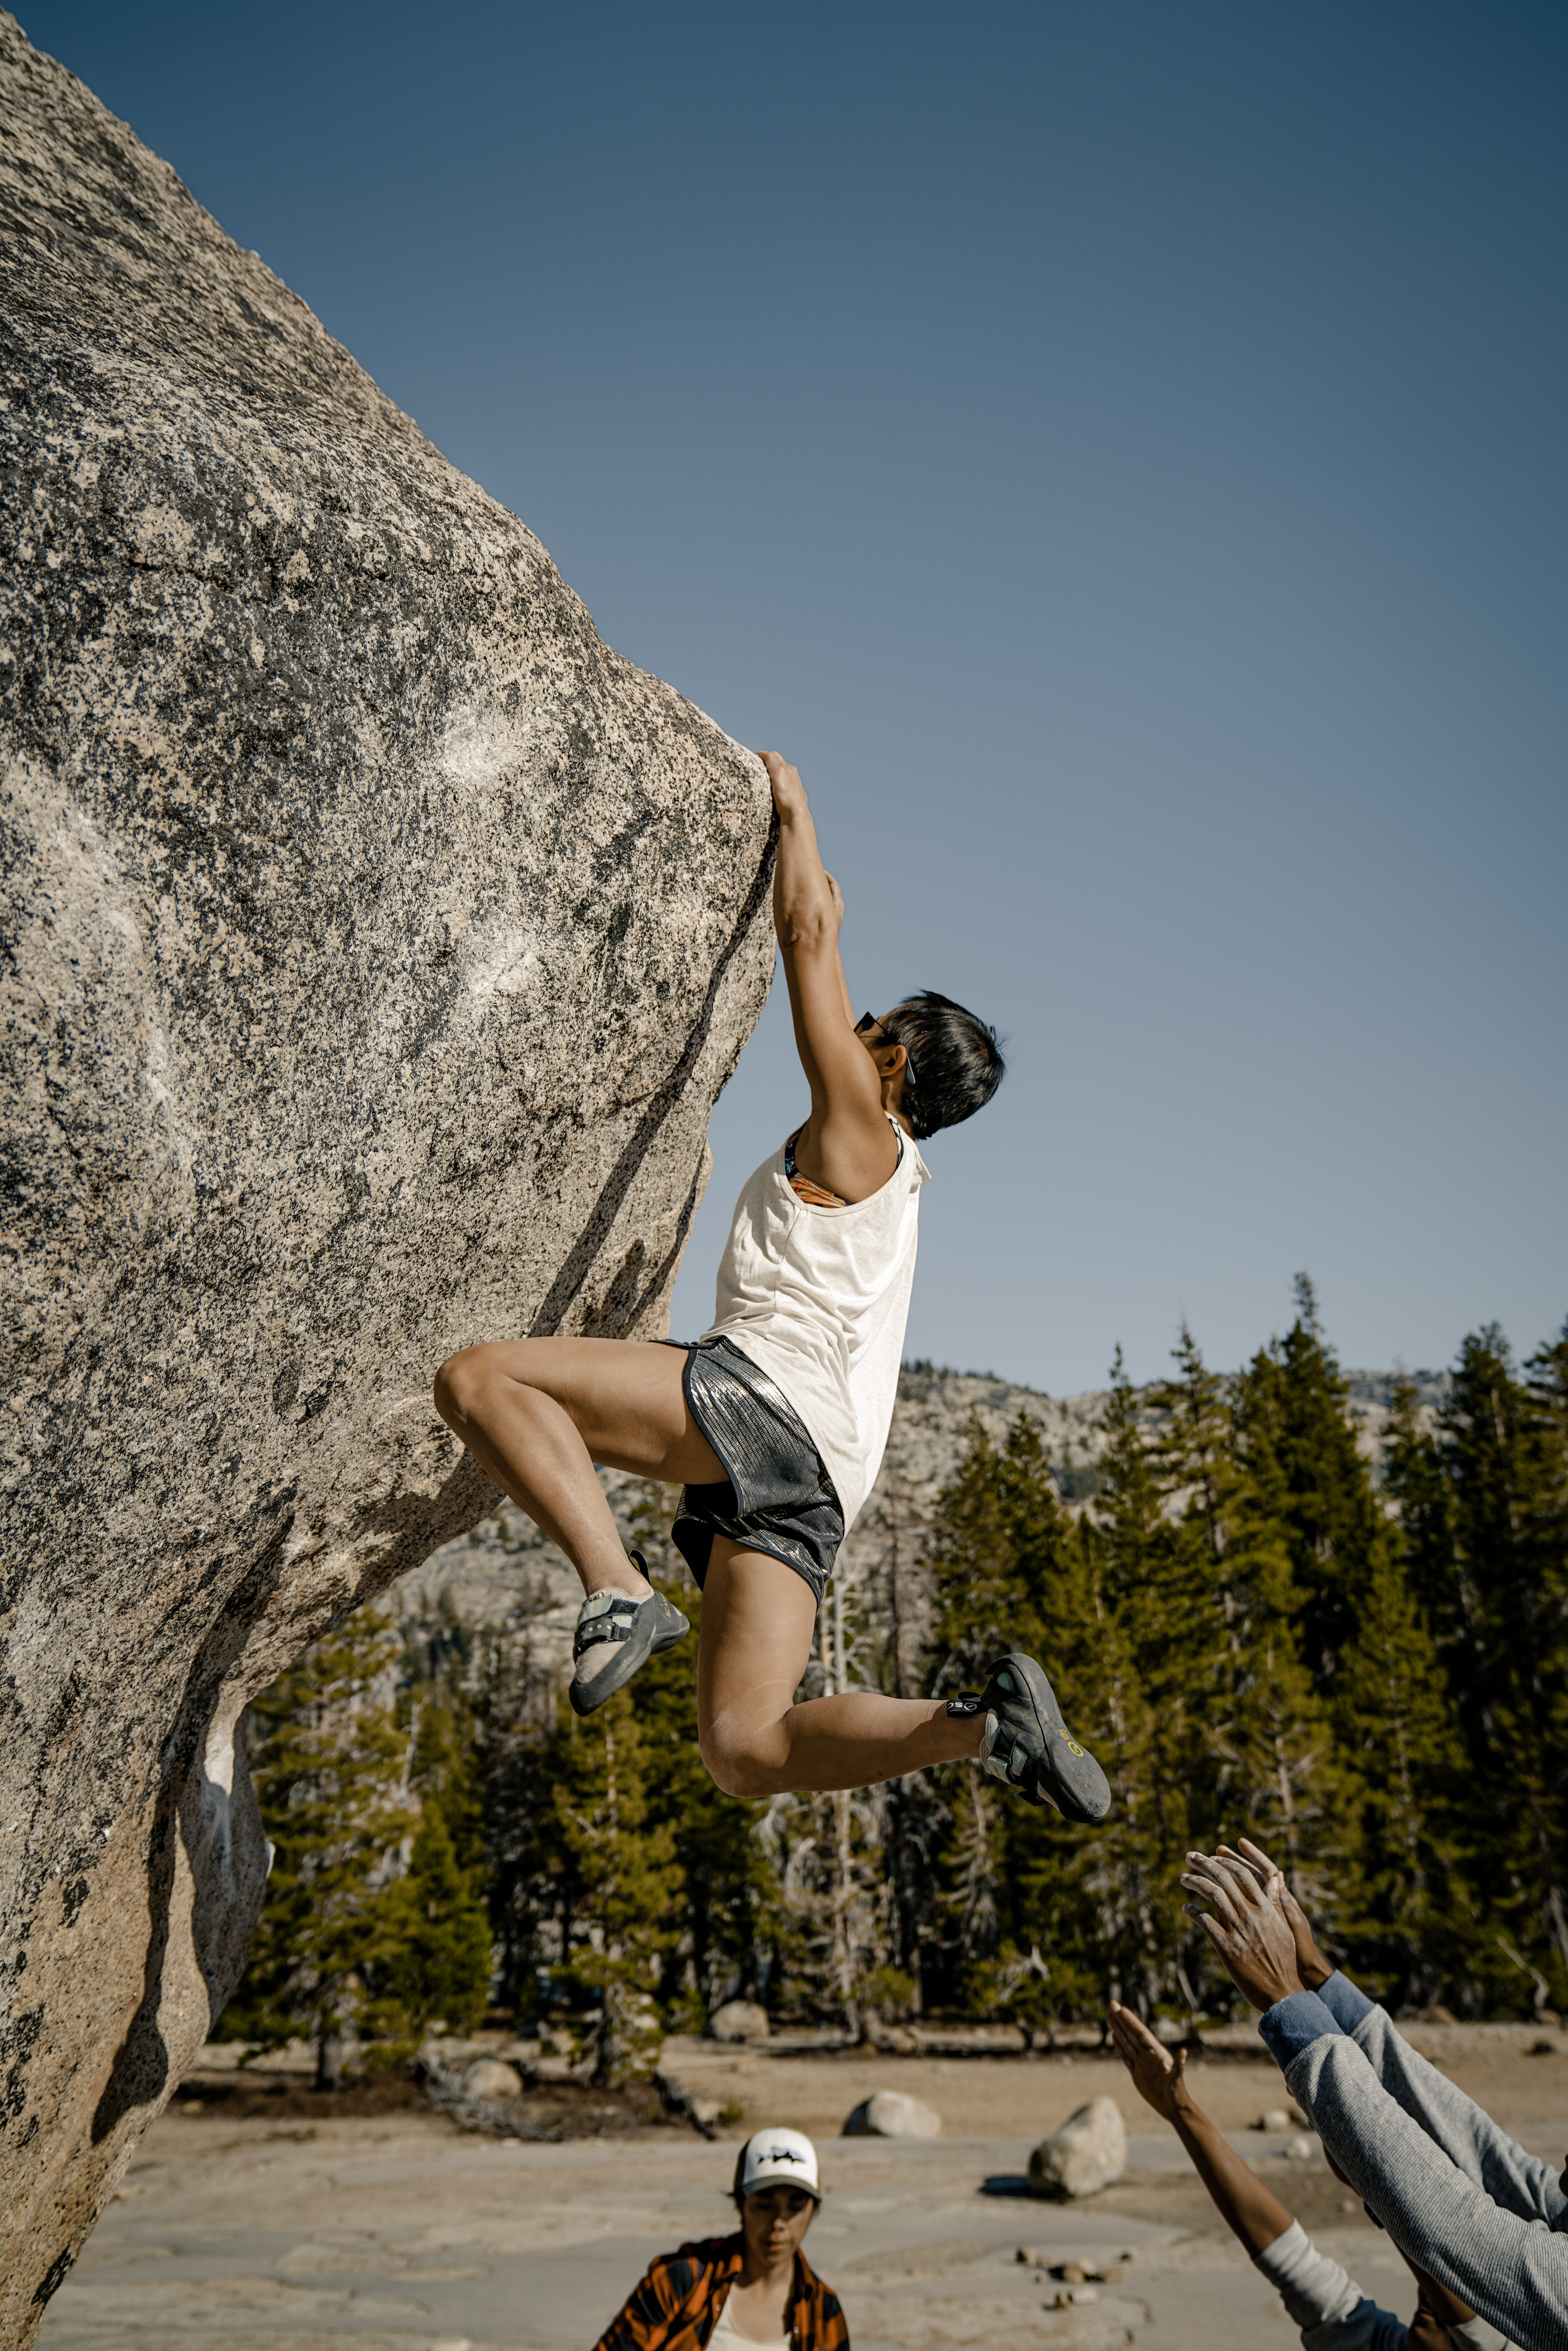 Narinda in a tank top and shiny shorts, feet swinging away from the overhanging granite boulder as she clings to the rock above.